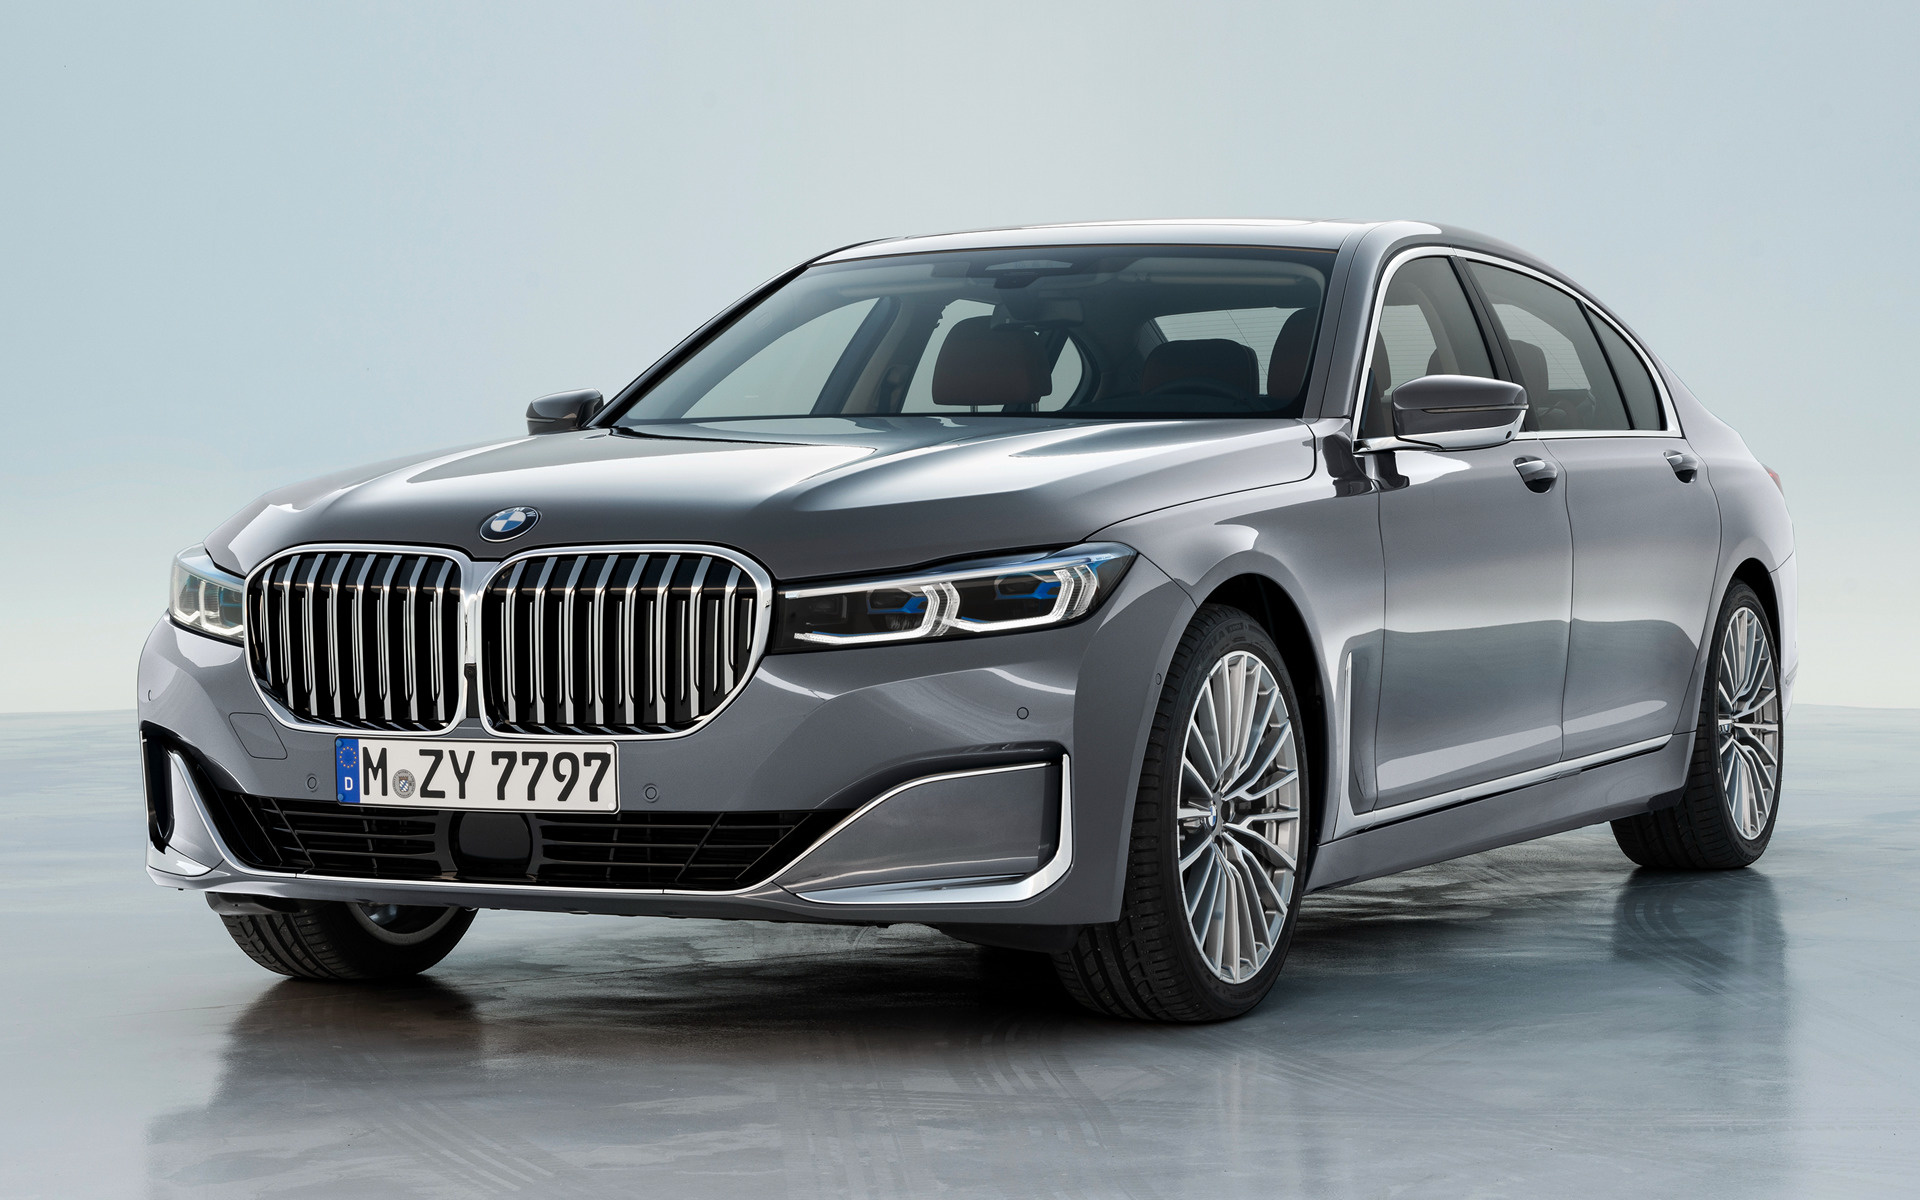 2019 Bmw 7 Series Lwb Wallpapers And Hd Images Car Pixel